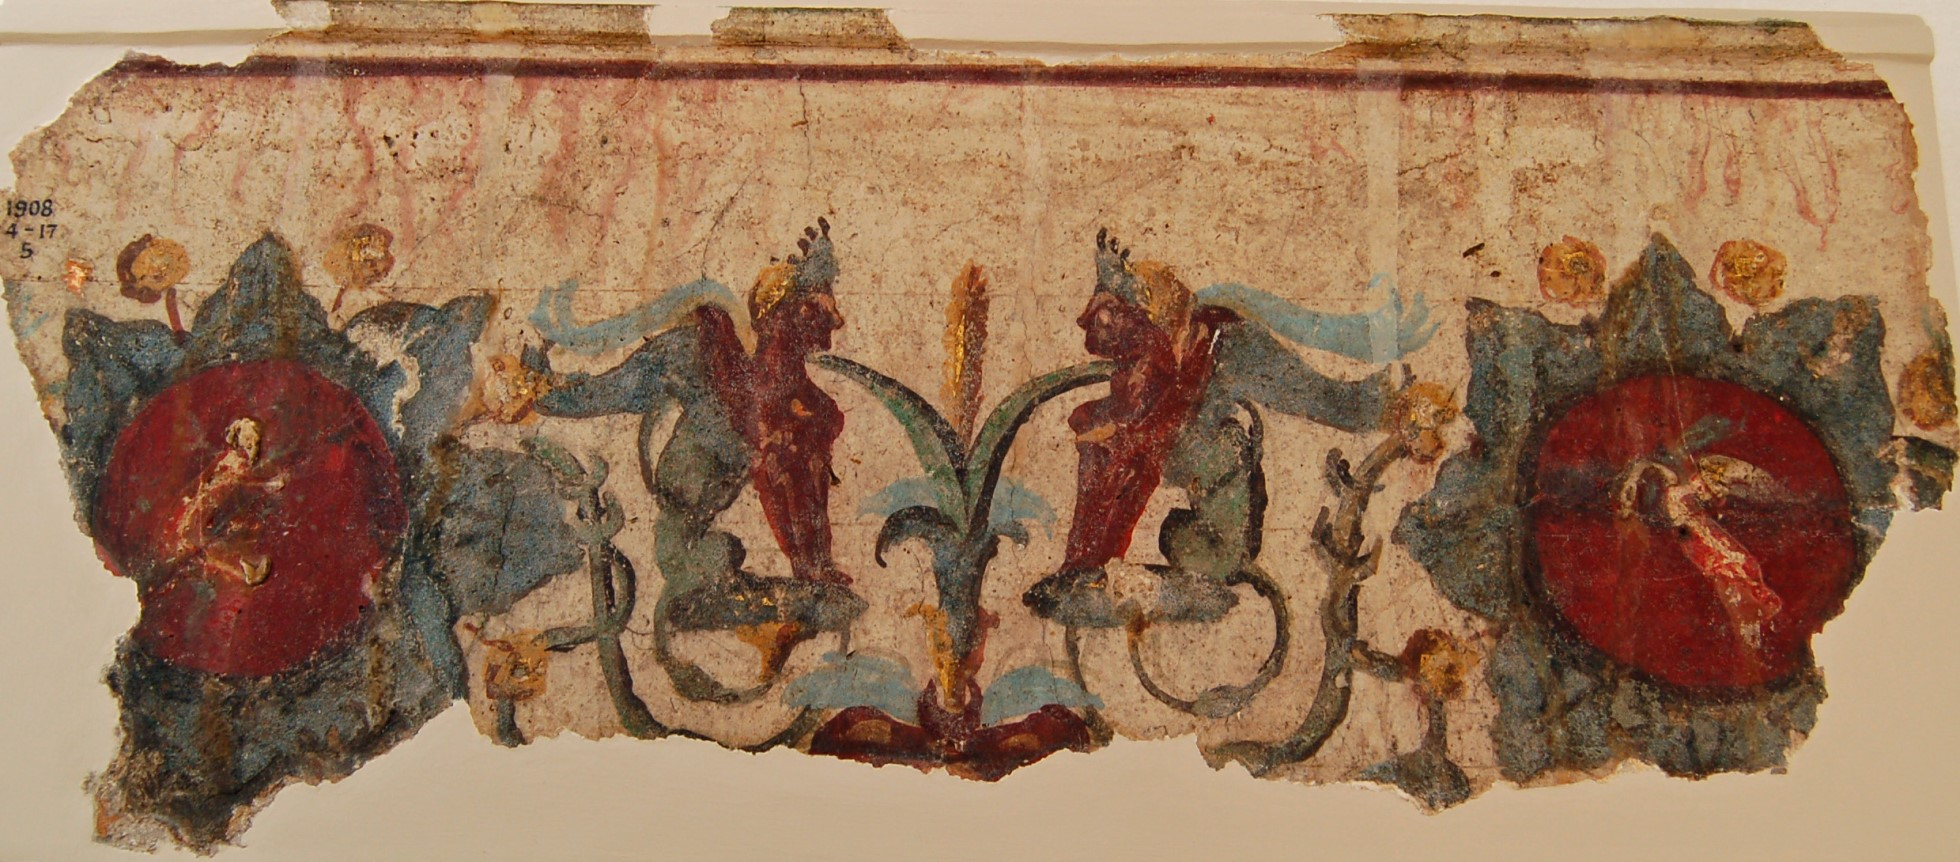 Fragment of a gilded wall painting in red, turquoise and gold. Part of a frieze showing a pair of sphinxes amongst acanthus plants with large flowers.